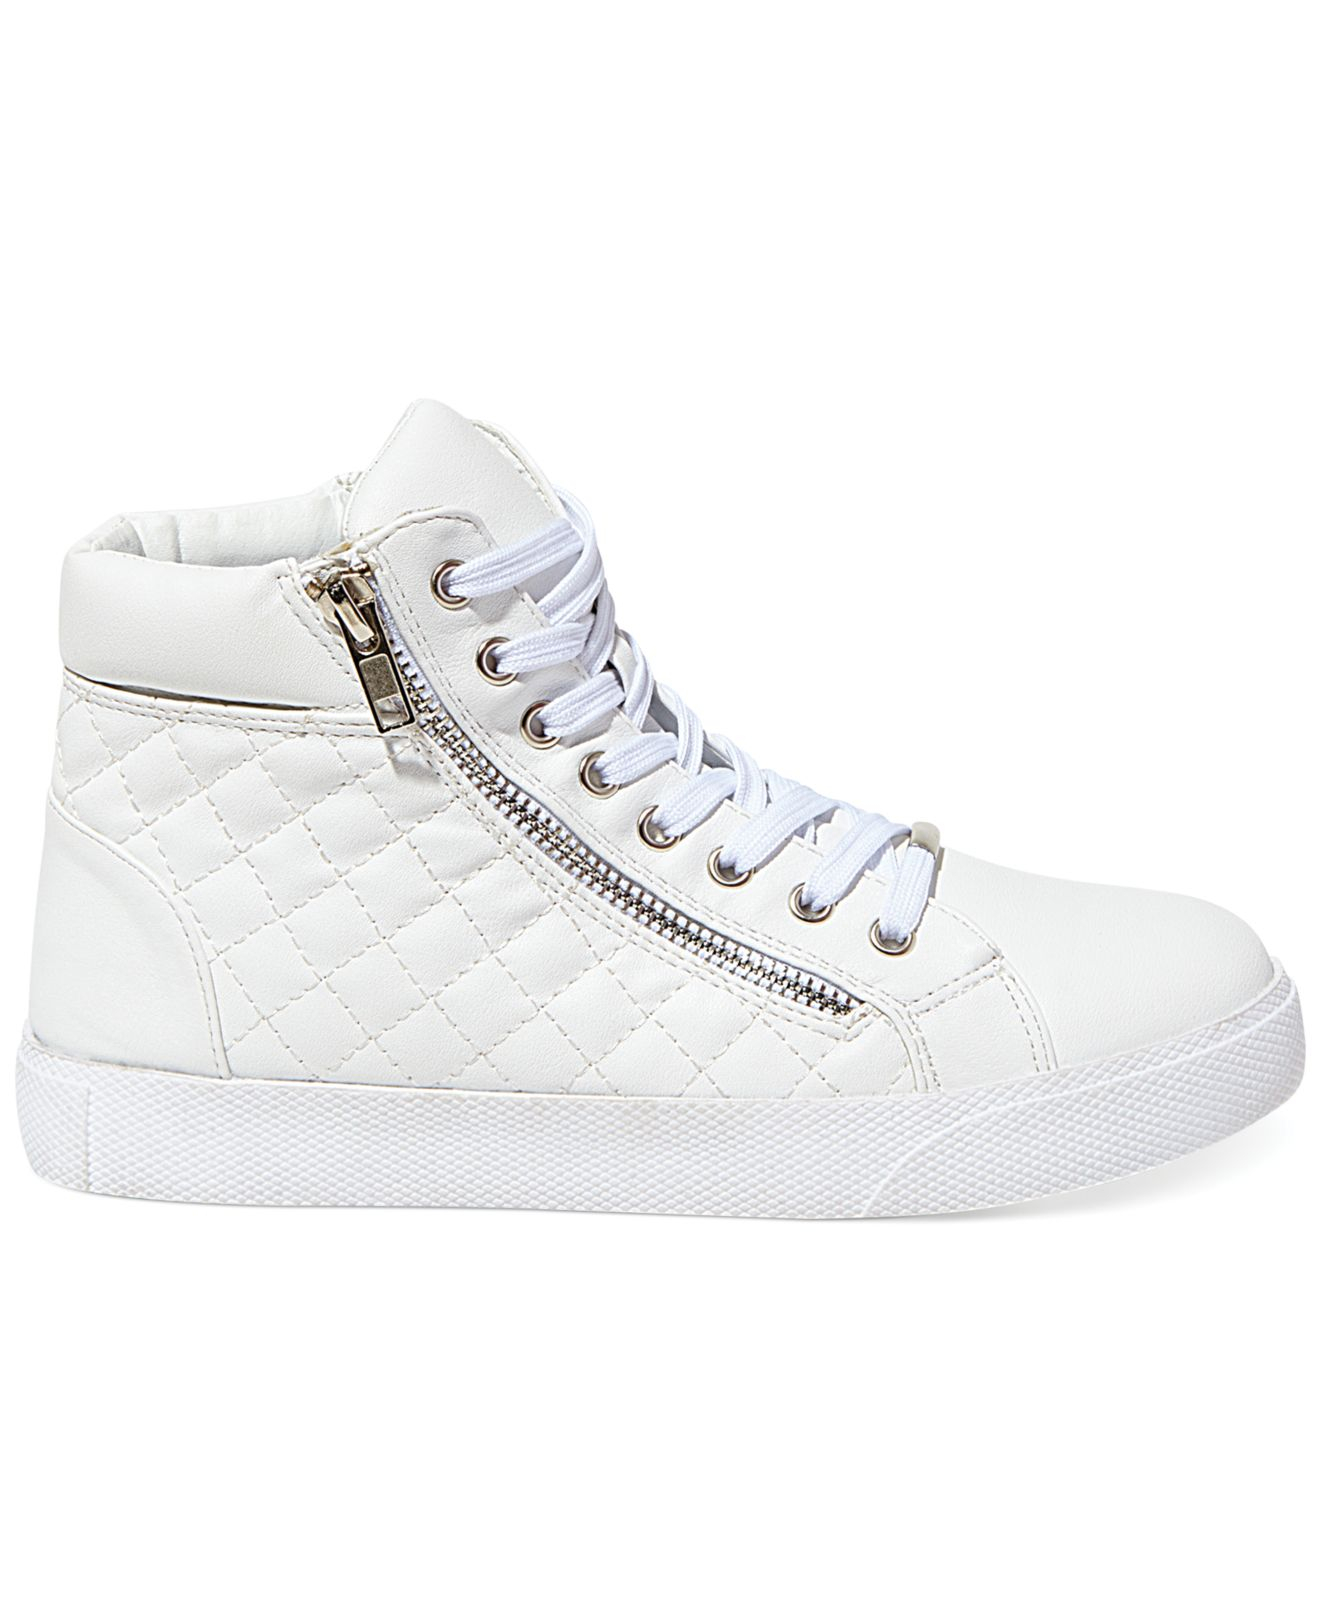 ad39d8f0c73 Lyst - Steve Madden Women S Caffine High Top Quilted Sneakers in White